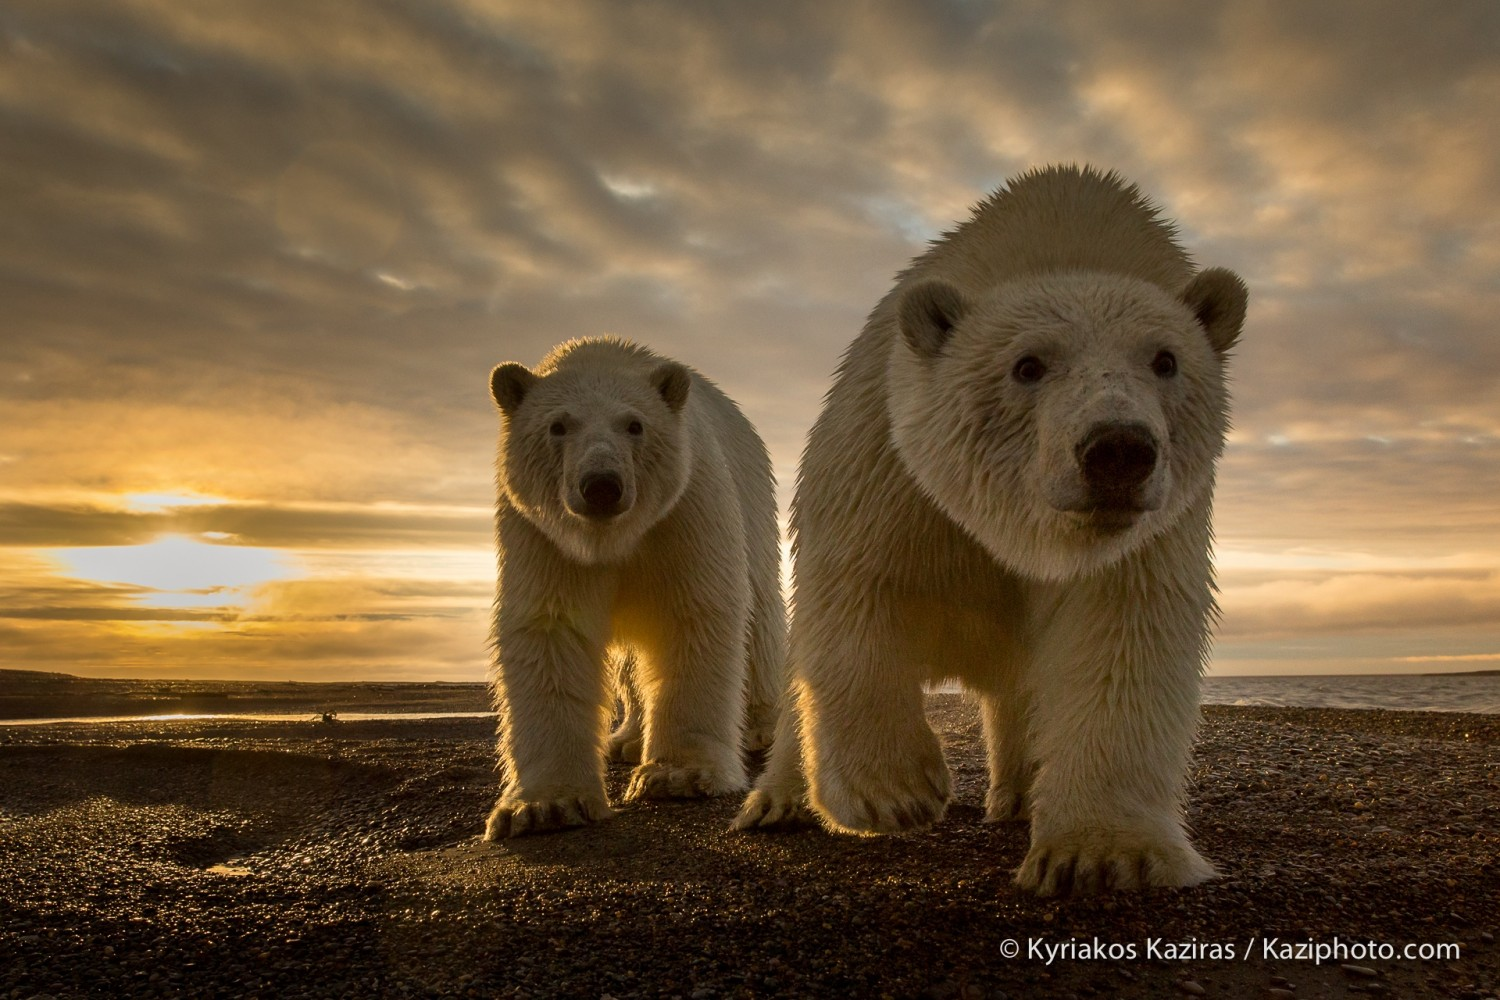 Best of 2014: Top 10 Animal Photos